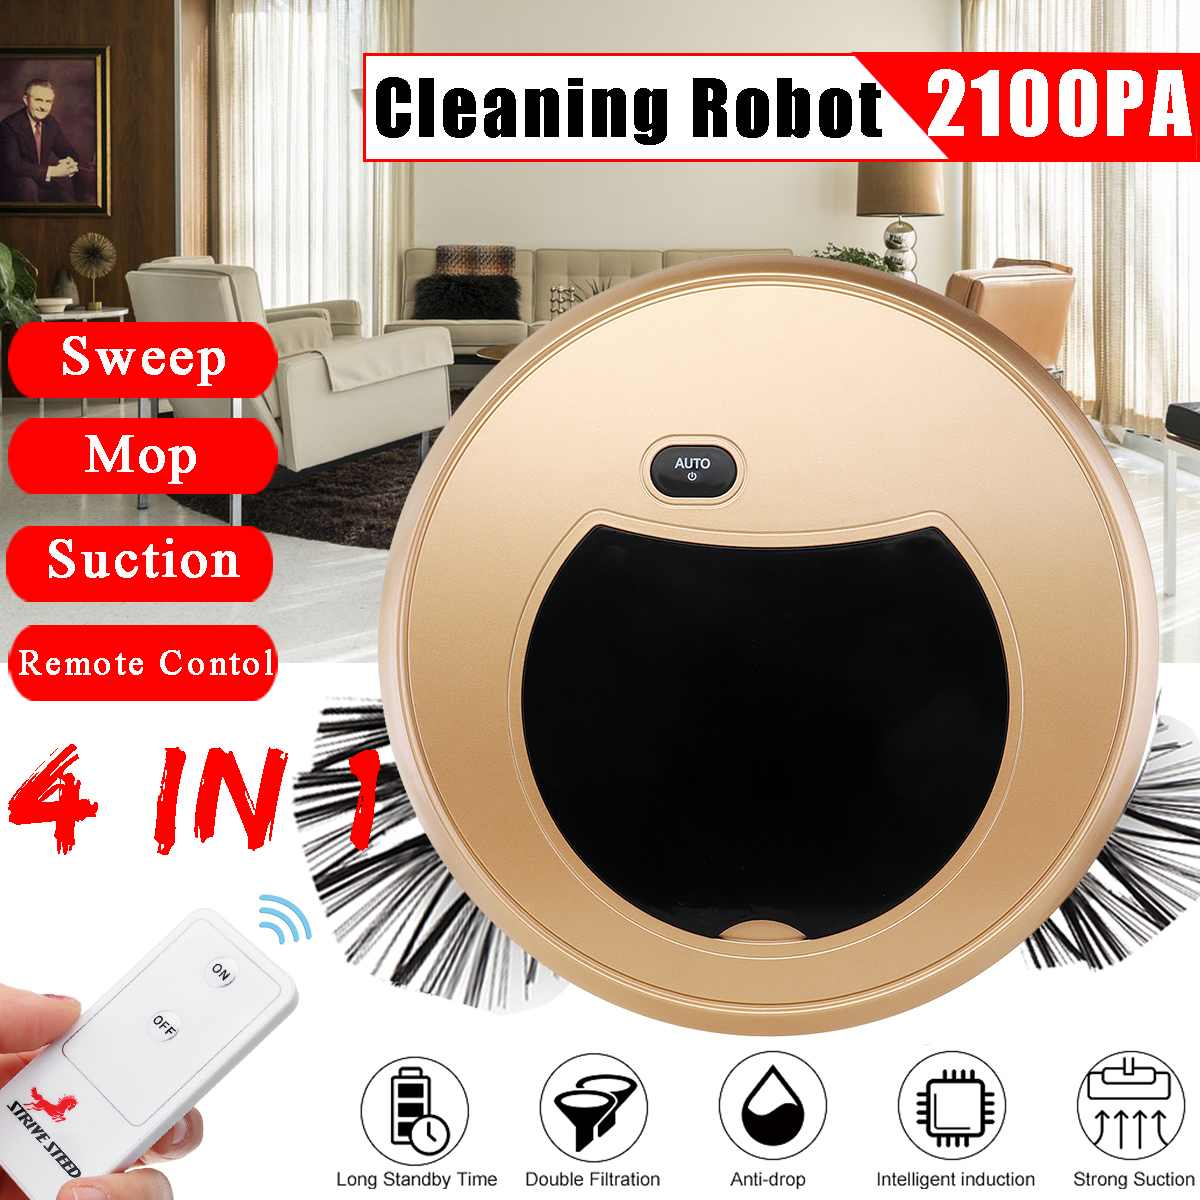 4 IN 1 Automatic Vacuum Smart Cleaning Robot Cleaner Sweeper Mop With Remote Control Sweeping USB Charger US Plug Strong Suction